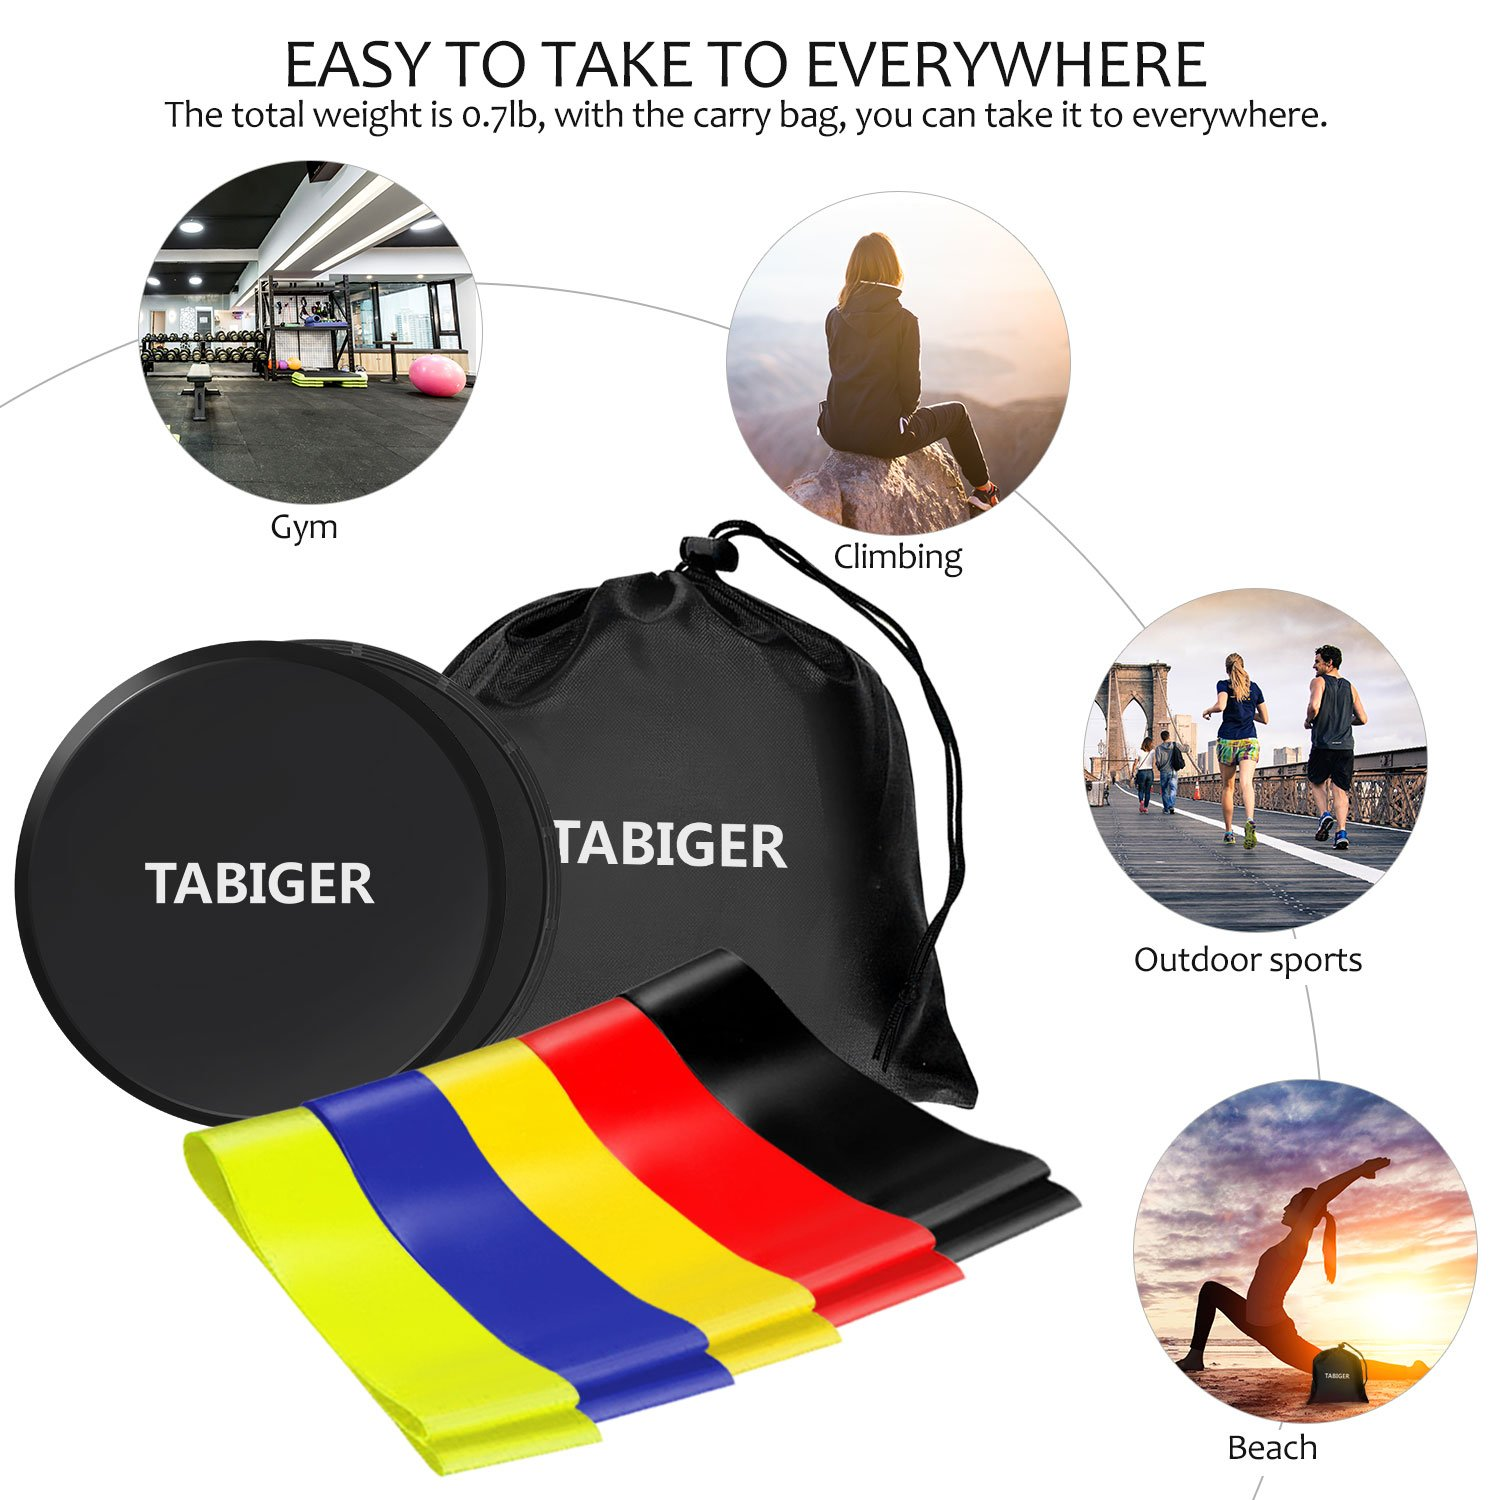 Tabiger Resistance Bands for Legs and Butt, Core Sliders and Resistance Bands Set, 5 Fitness Bands and 2 Gliding Discs with Carry Bag for Sport, Abdominal Exercise, Strengthen, Physical Therapy by Tabiger (Image #5)